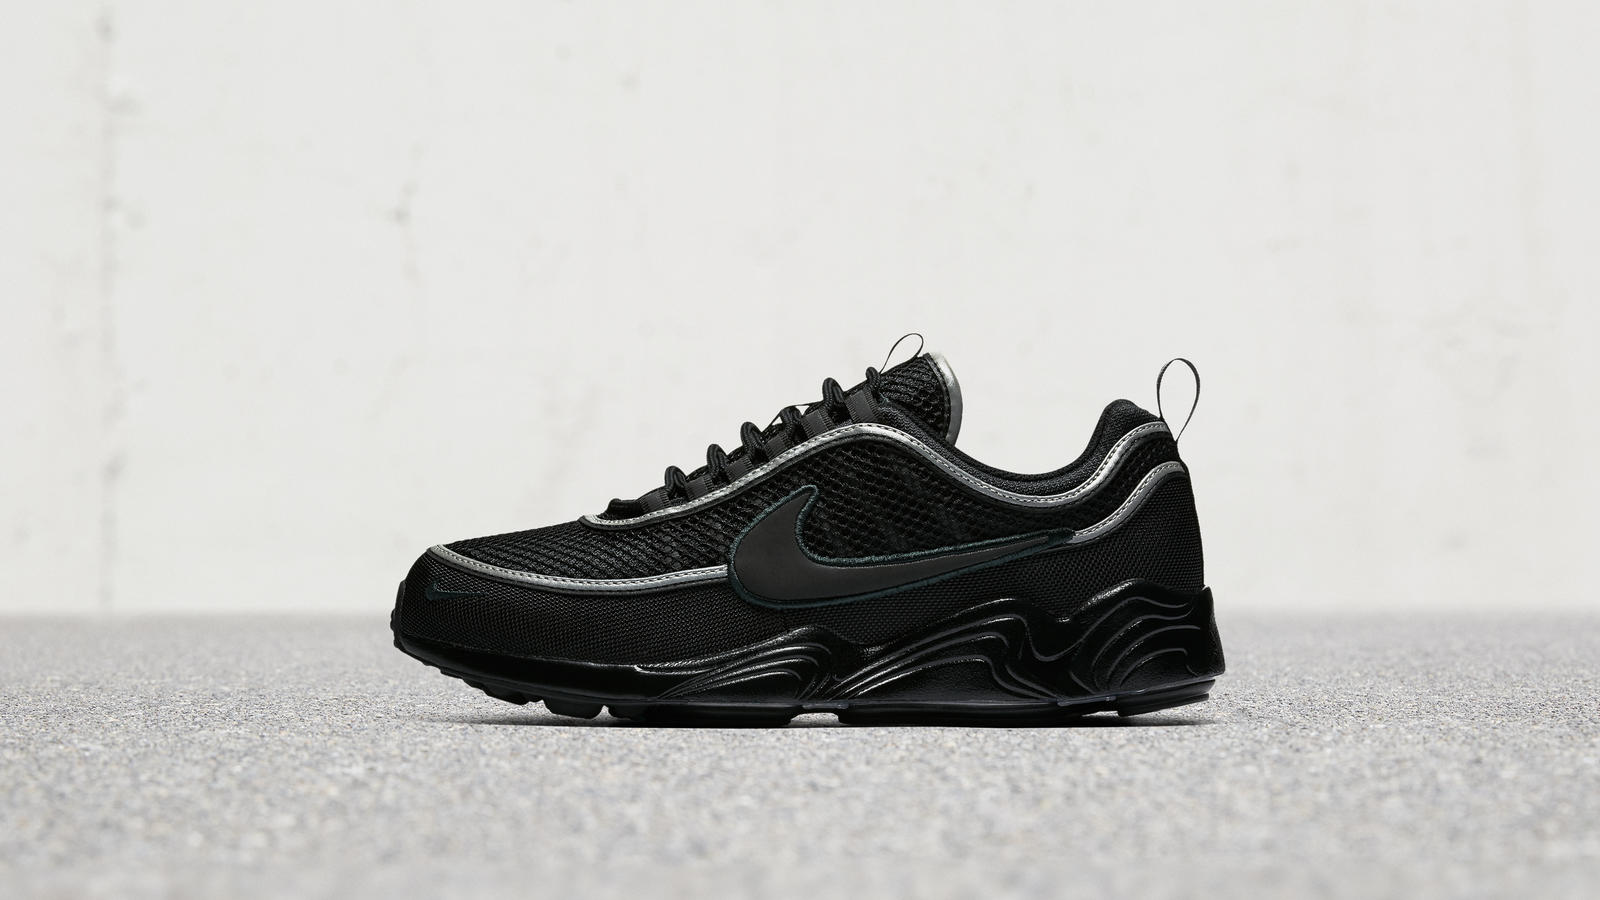 5fb7b07f1 Nike Air Zoom Spiridon '16 - Nike News